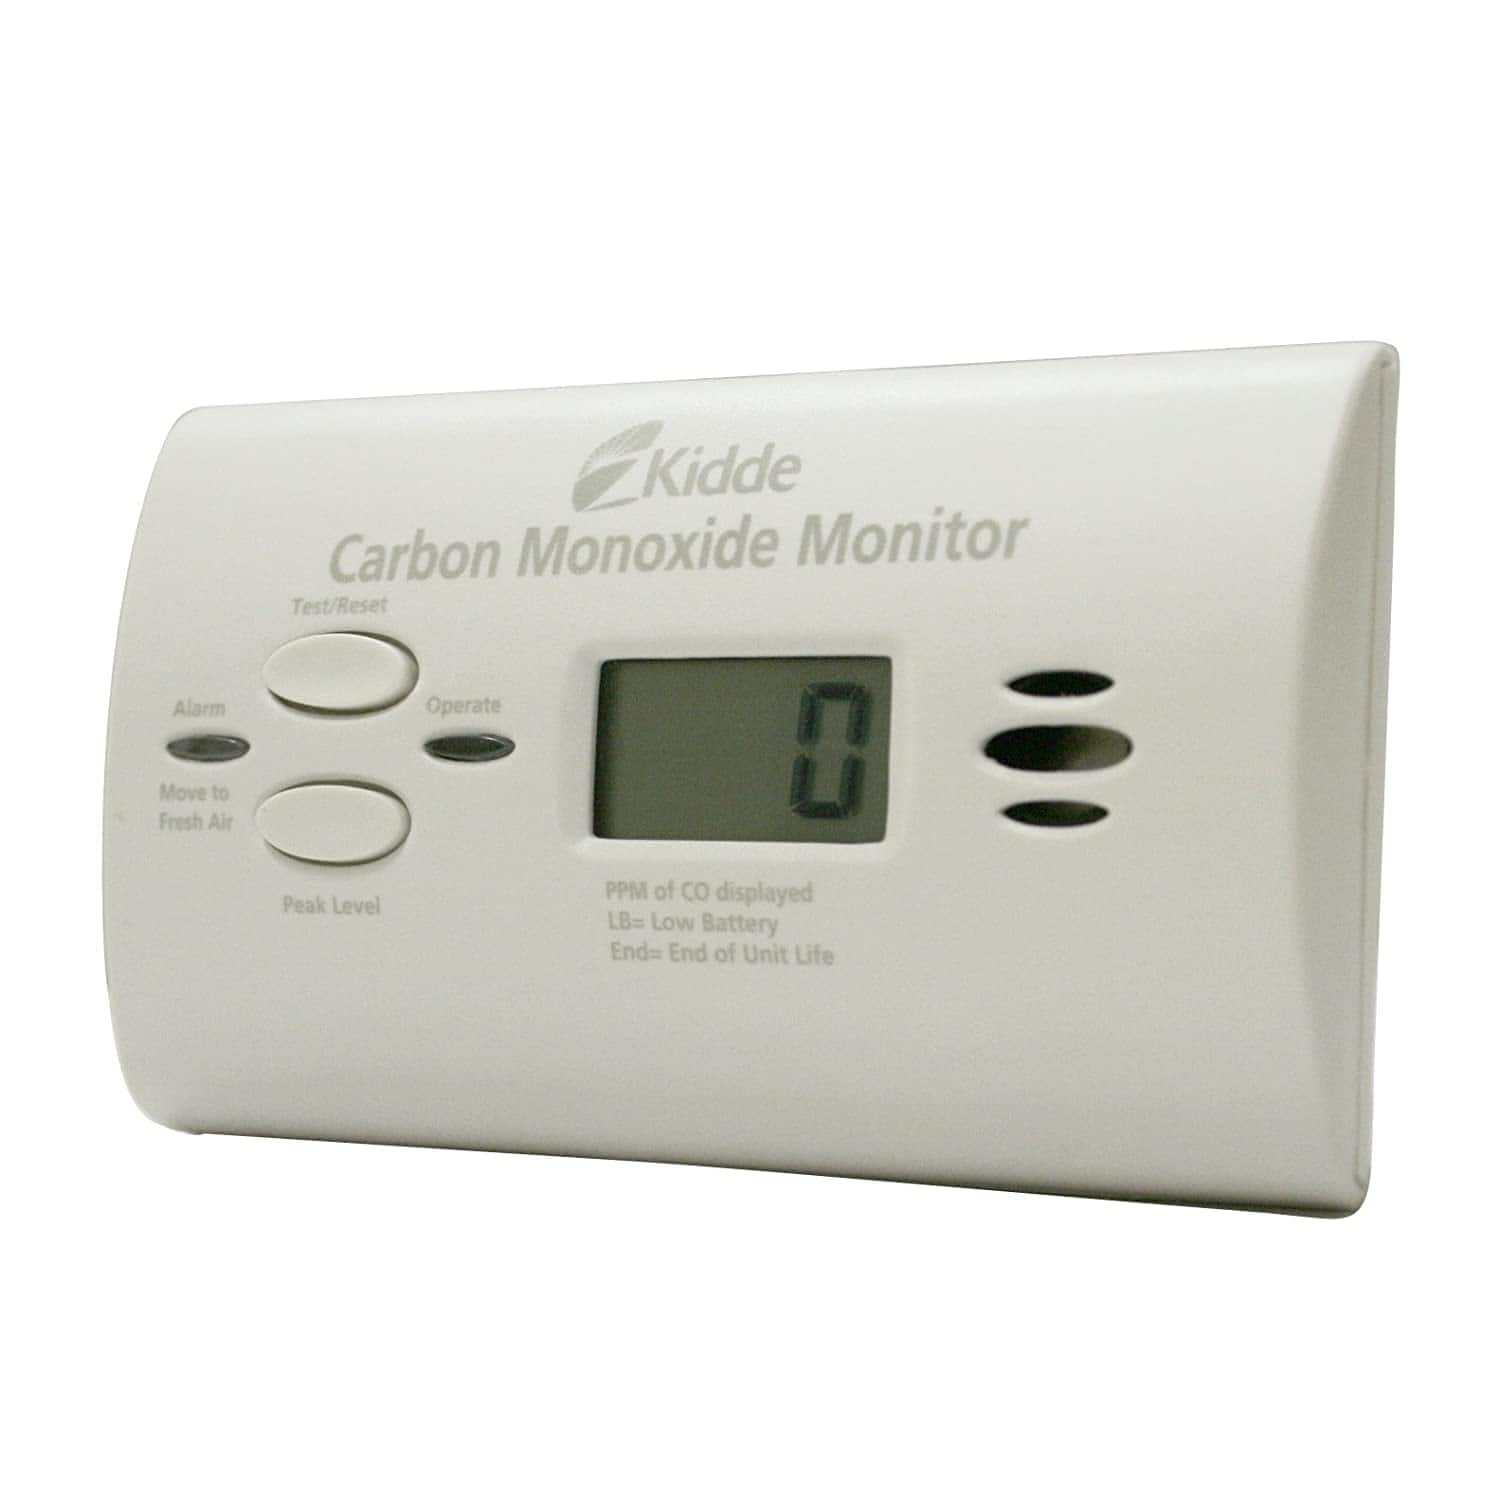 Kidde Ultra-Sensitive Battery Powered Carbon Monoxide Monitor $29.15 + Free Shipping